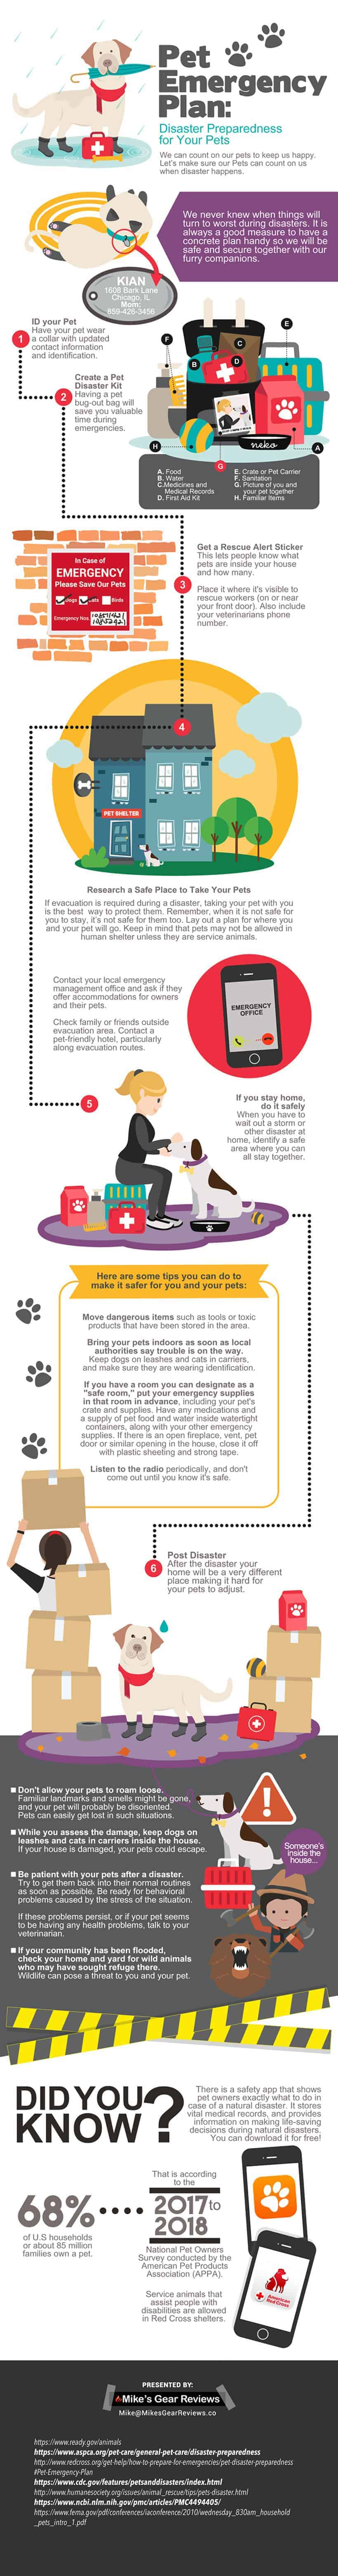 pet emergency plan